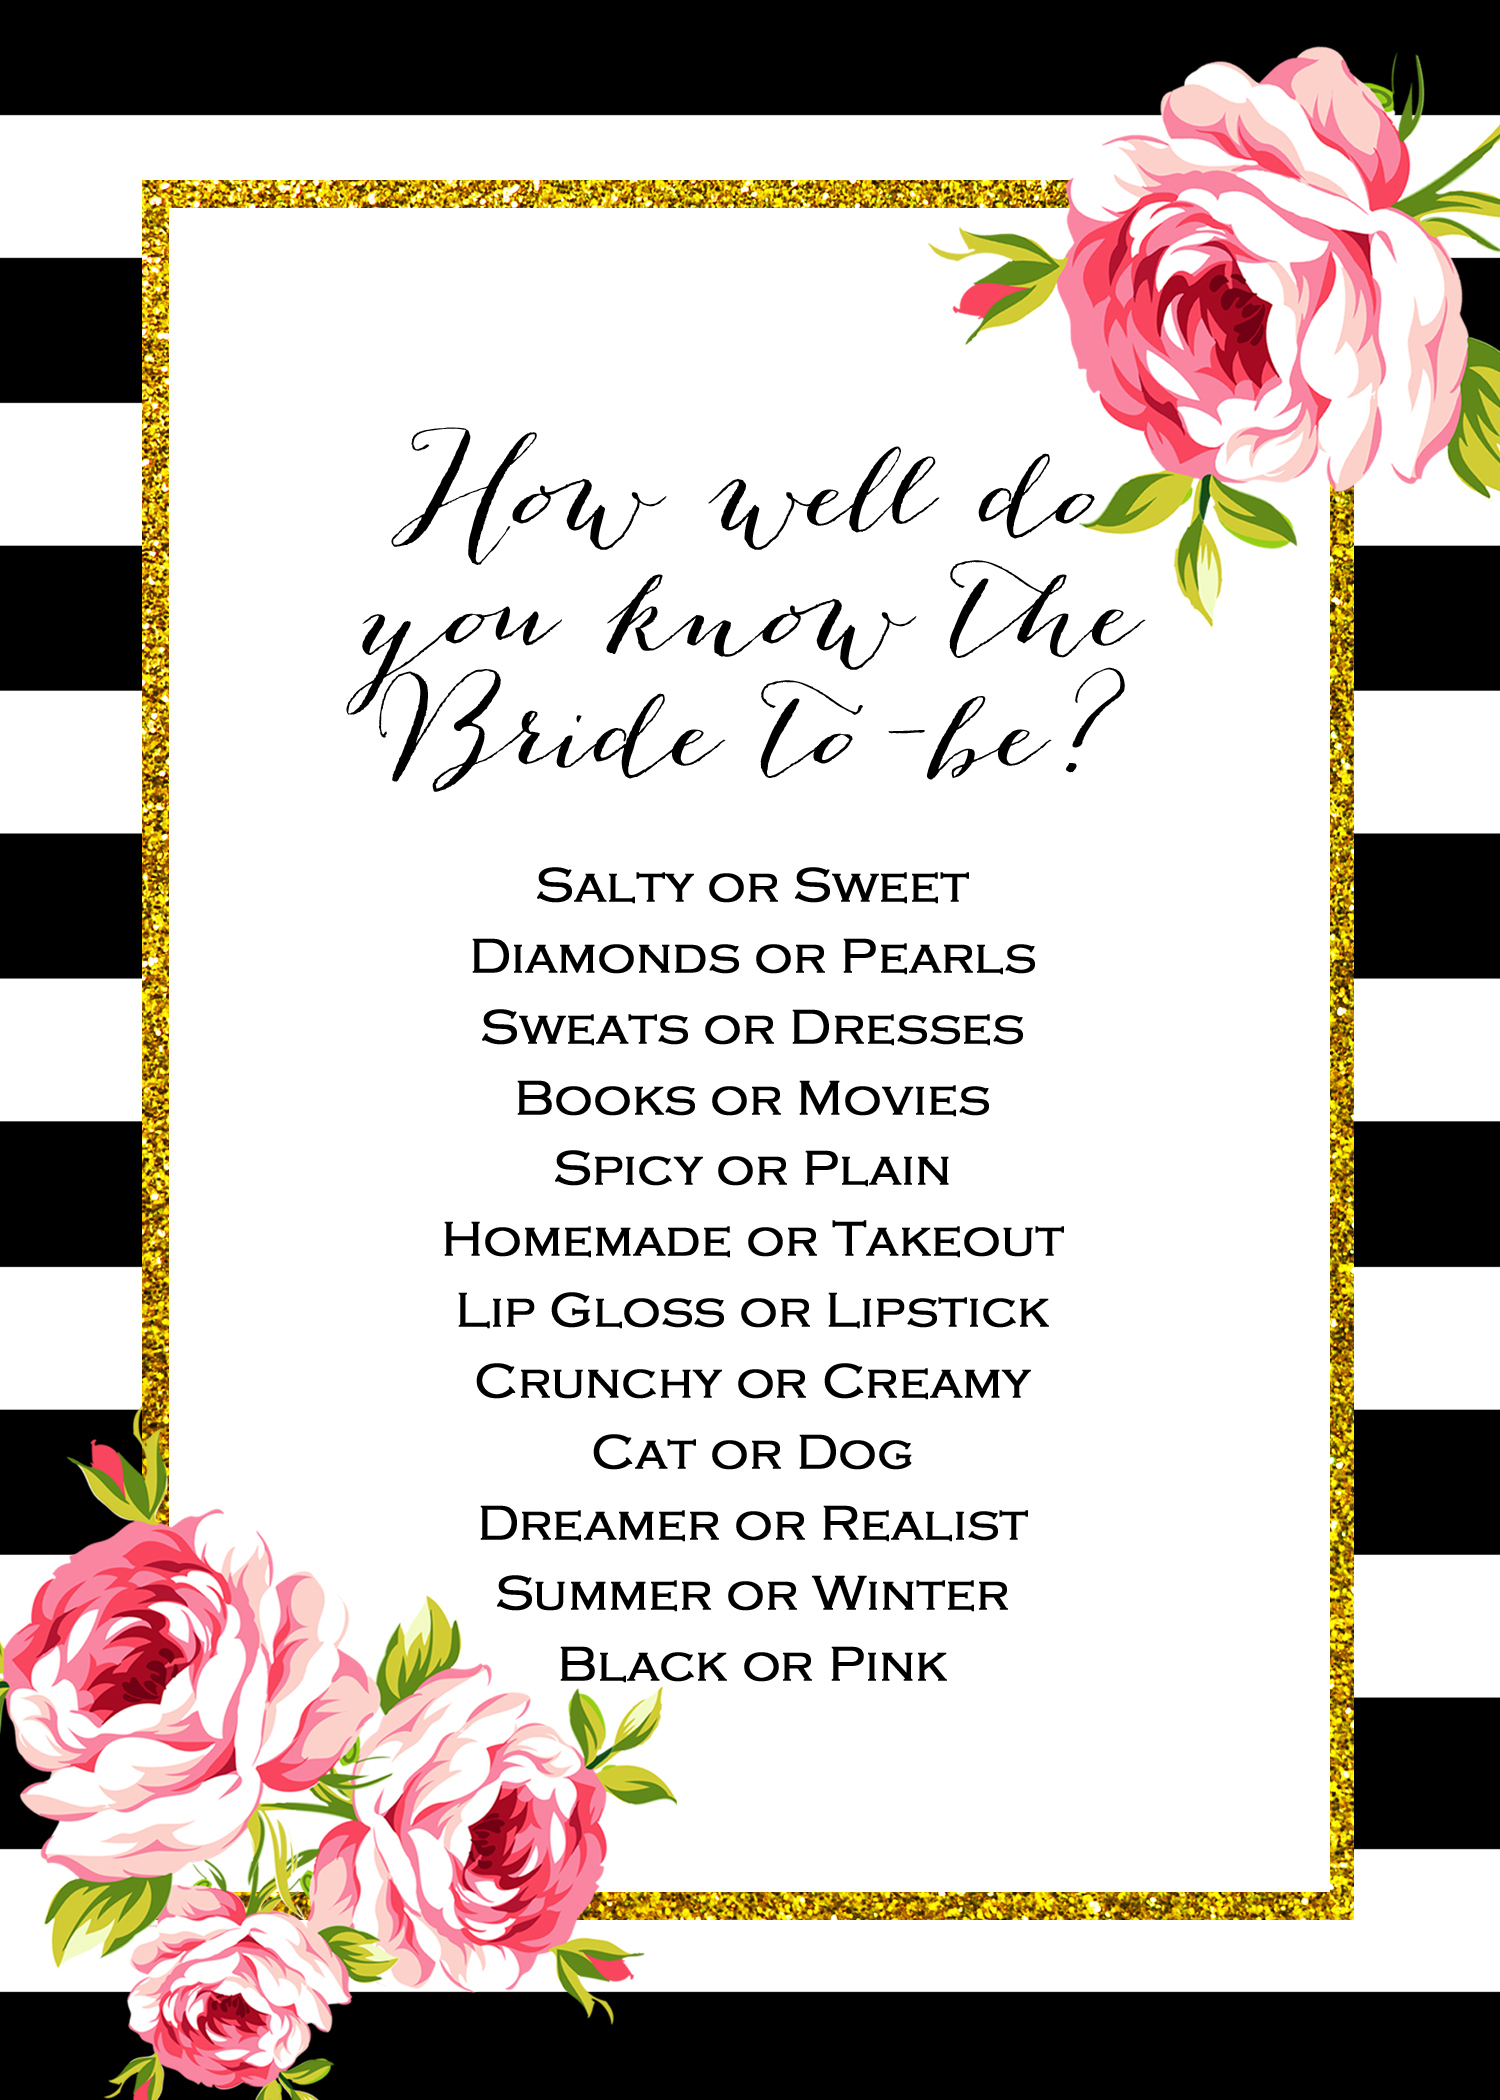 2_Free_Printable_Games Archives - Bridal Shower Ideas - Themes - How Well Does The Bride Know The Groom Free Printable